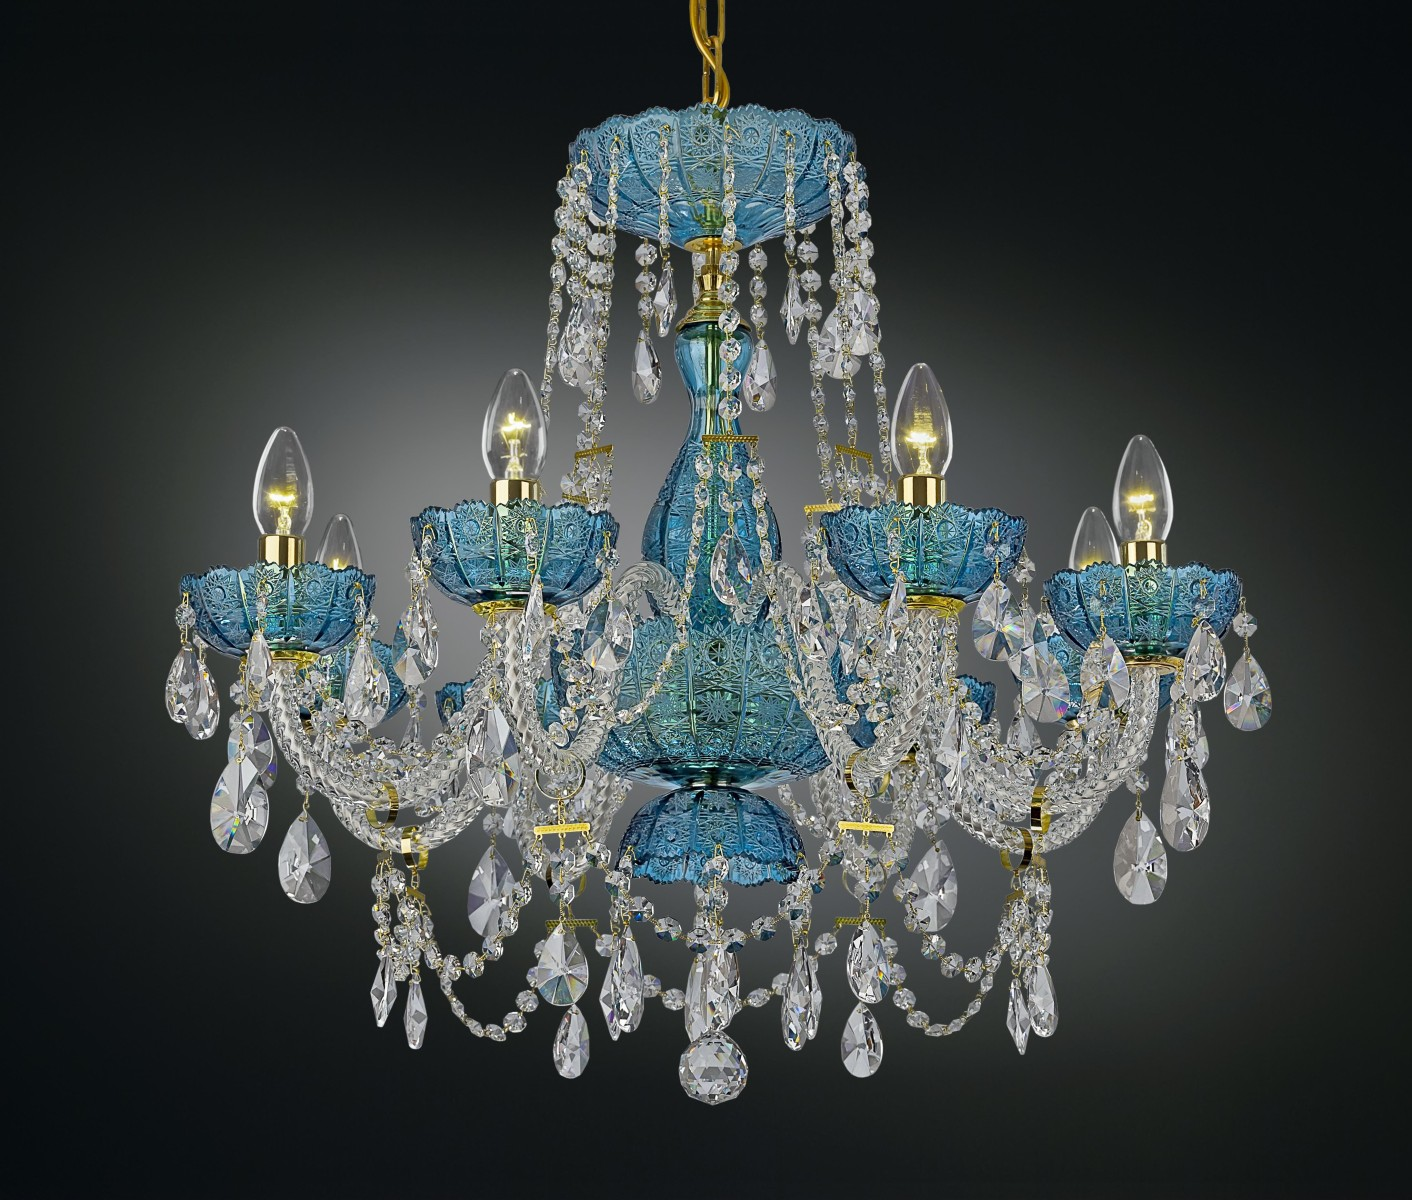 7 Things To Consider Before Buying And Installing A Chandelier